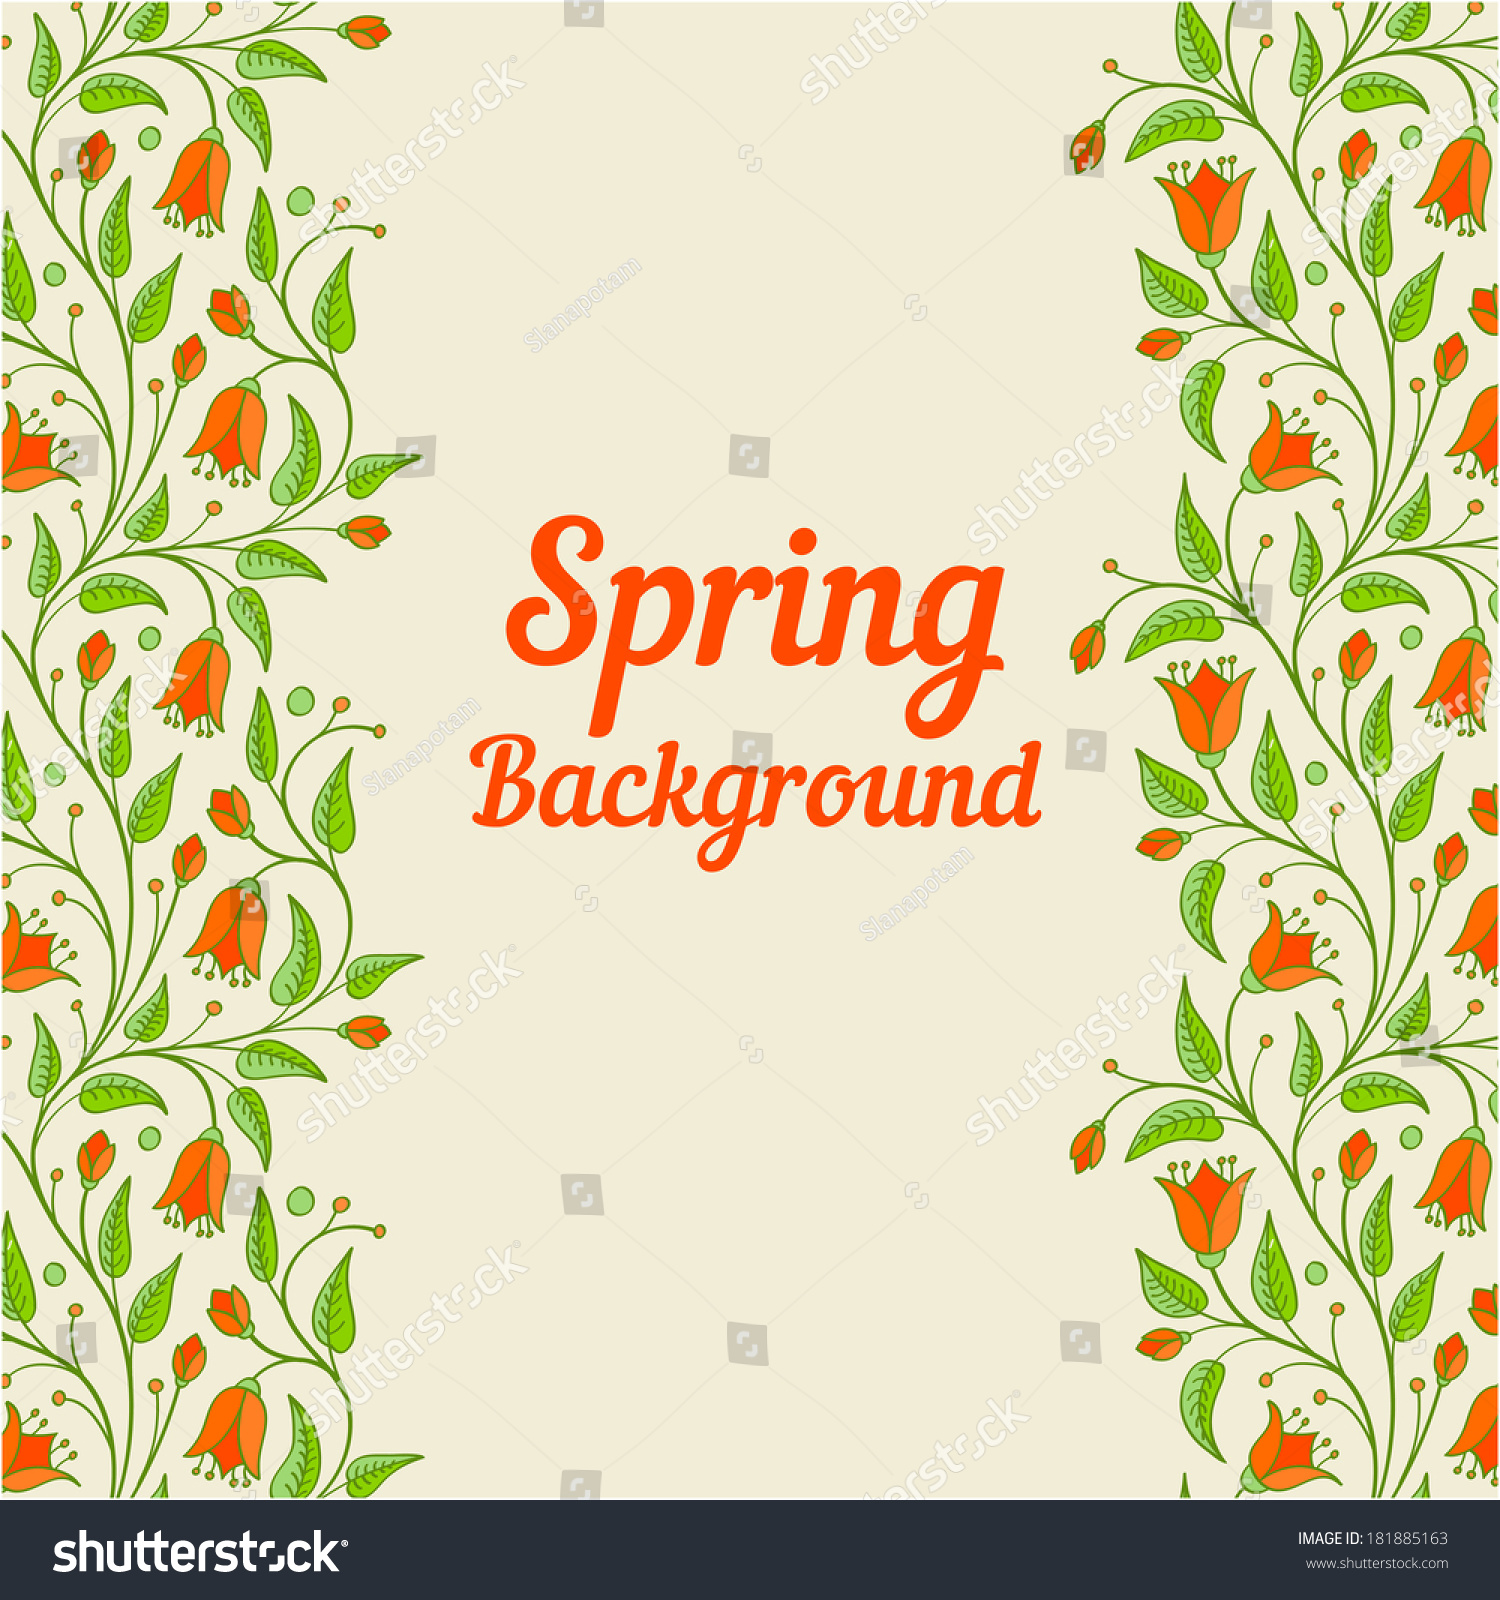 Spring Background Floral Borders Colorful Flowers Stock Vector